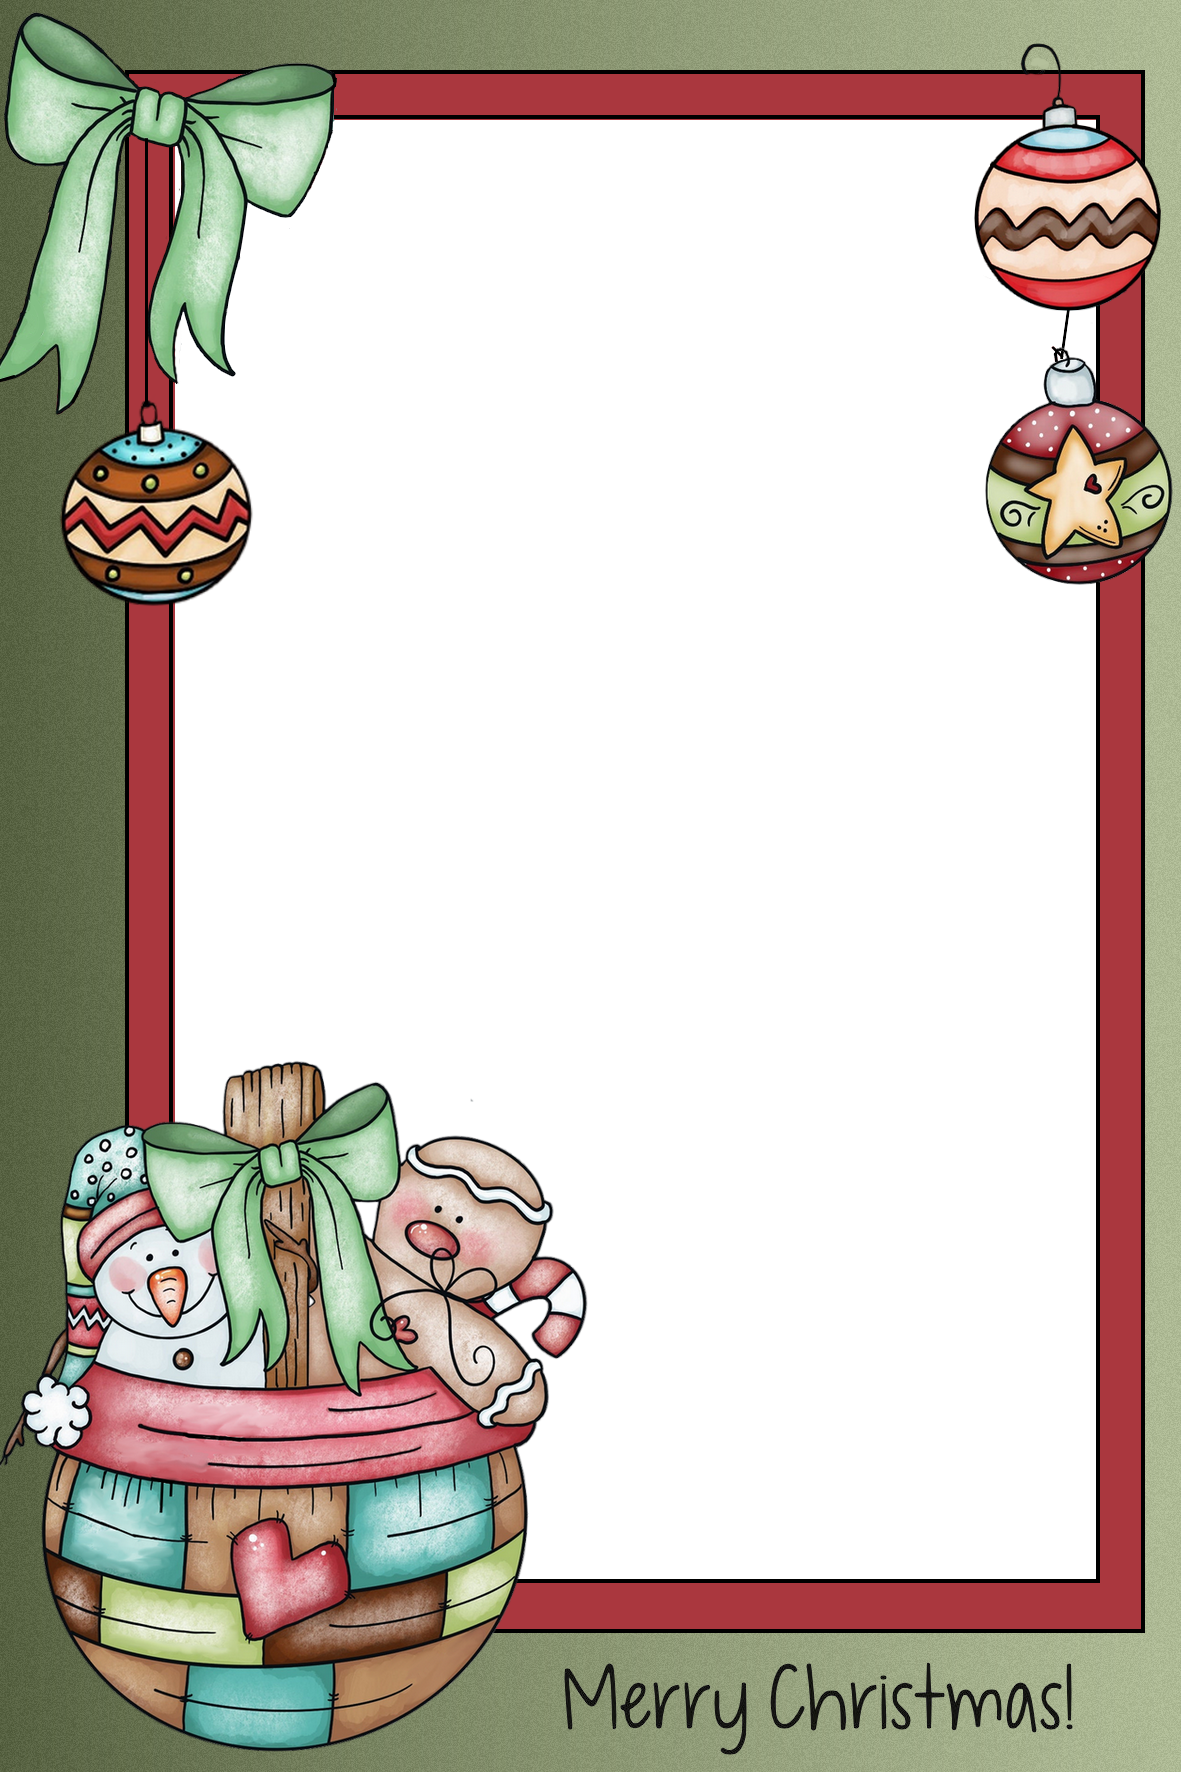 Merry Christmas frame PNG | Рамки